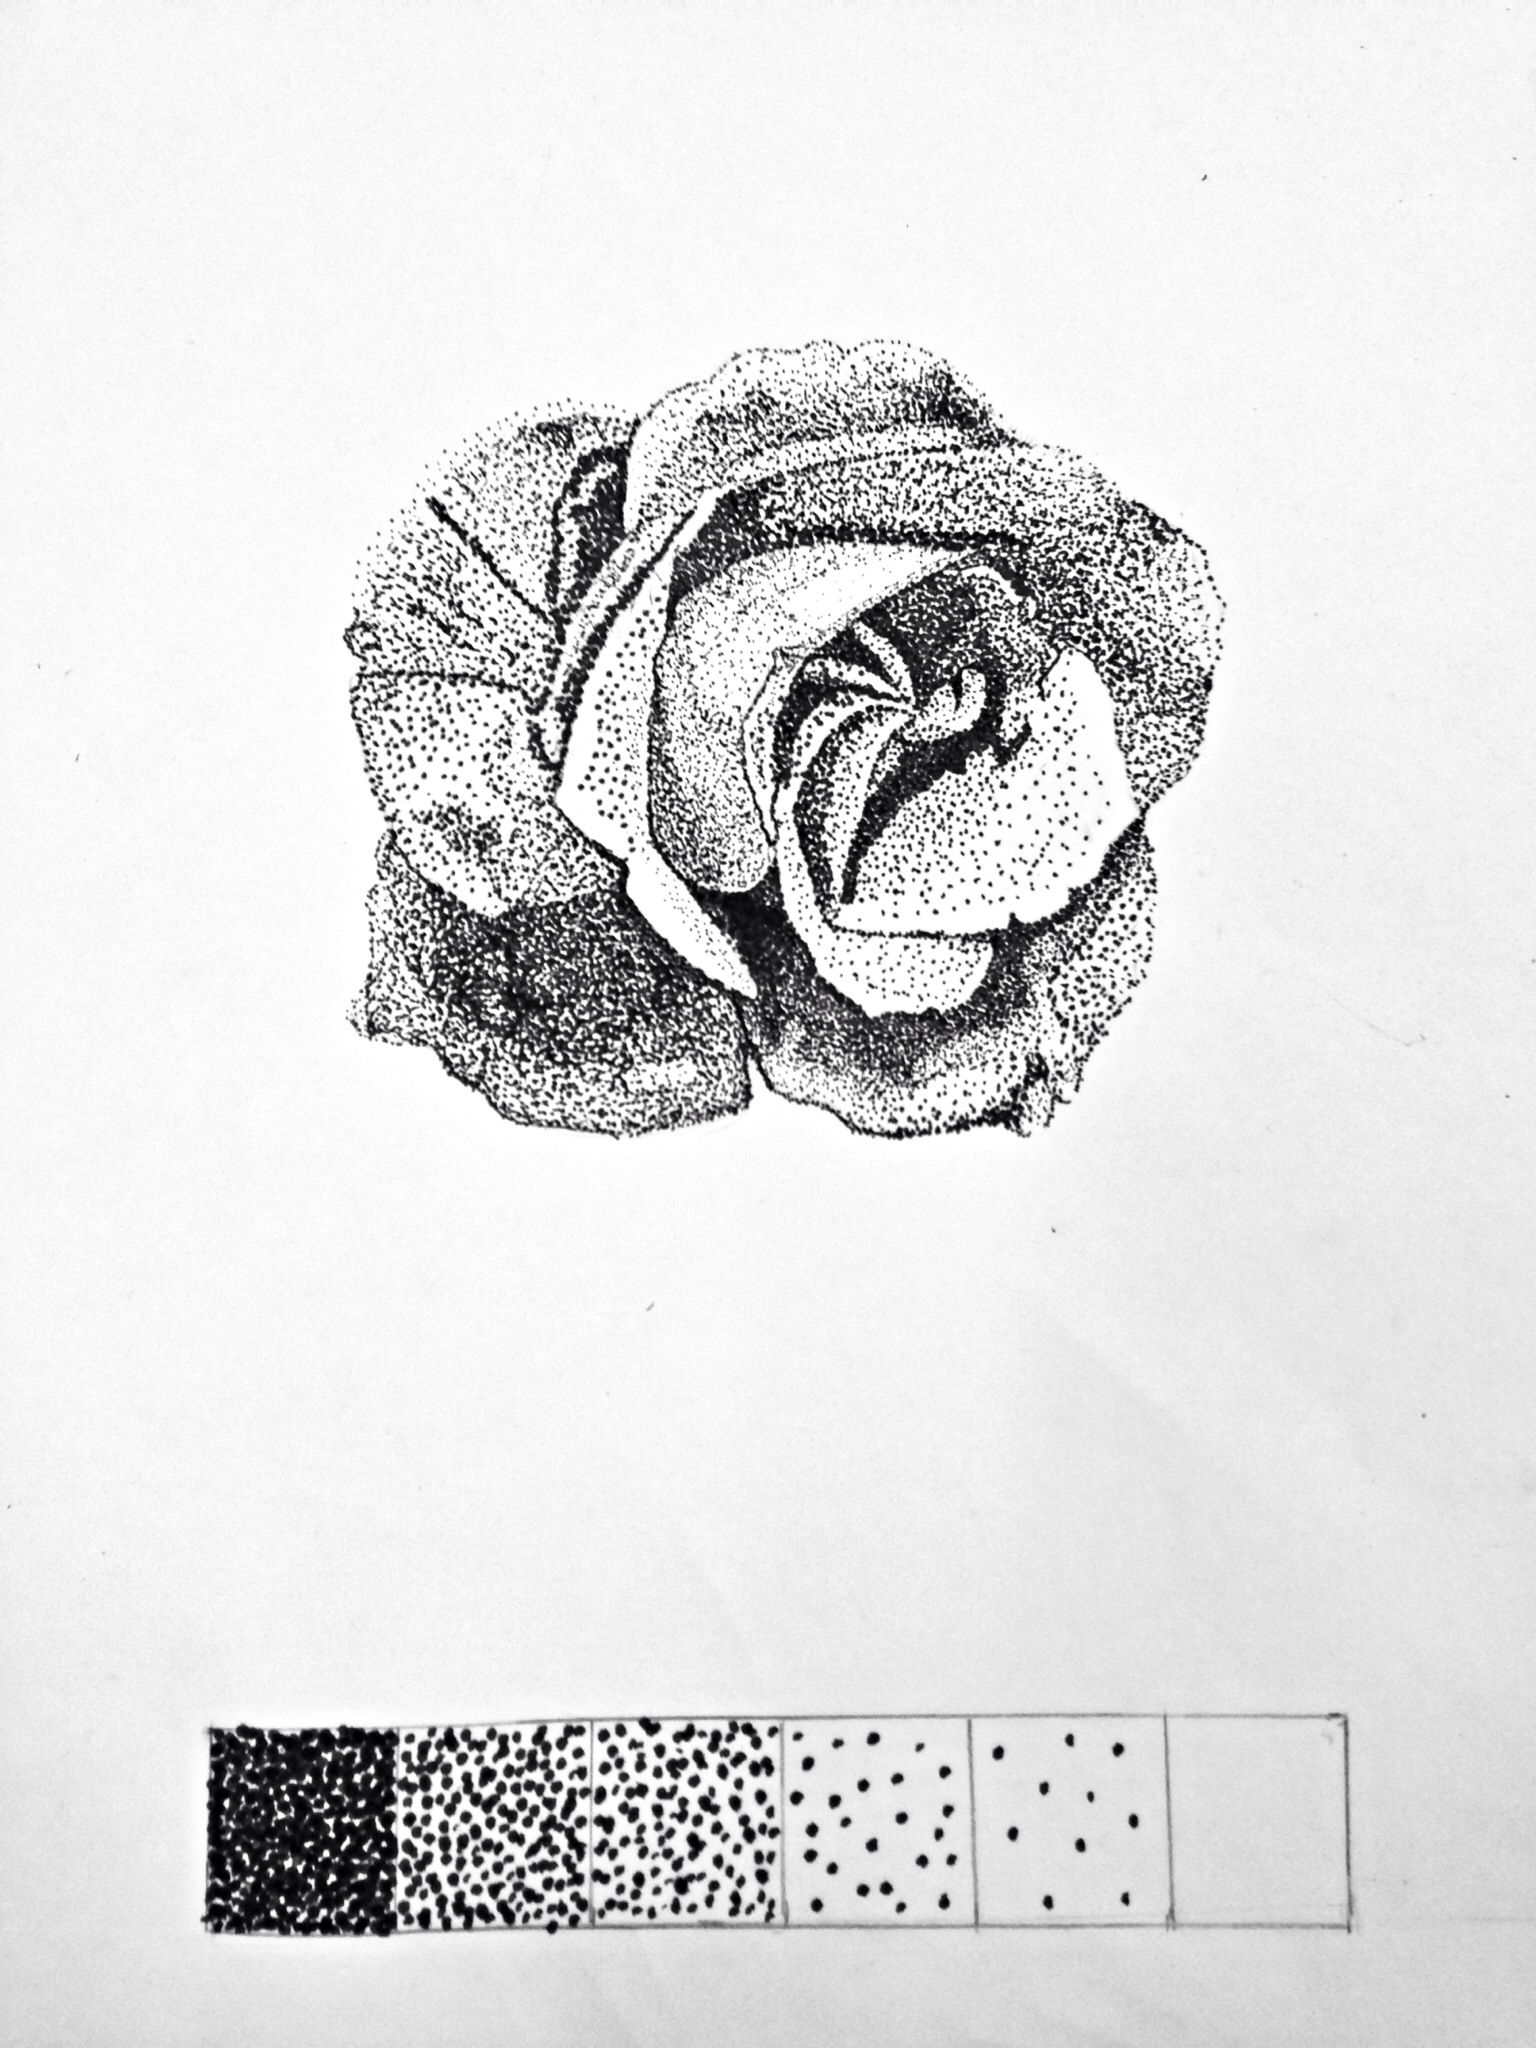 Rose Dot Pointillism Art Project Using A Calligraphy Pen 6 Value Scale